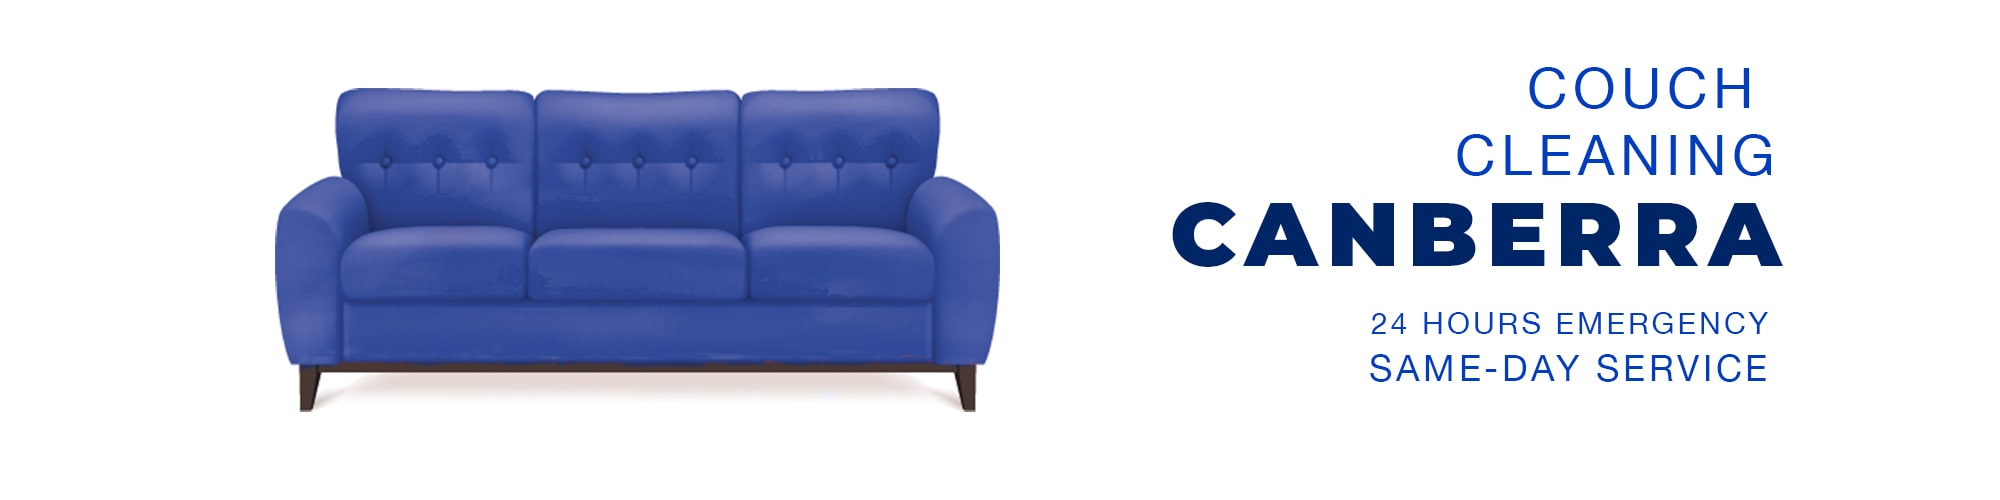 Crystal couch cleaning Canberra banner